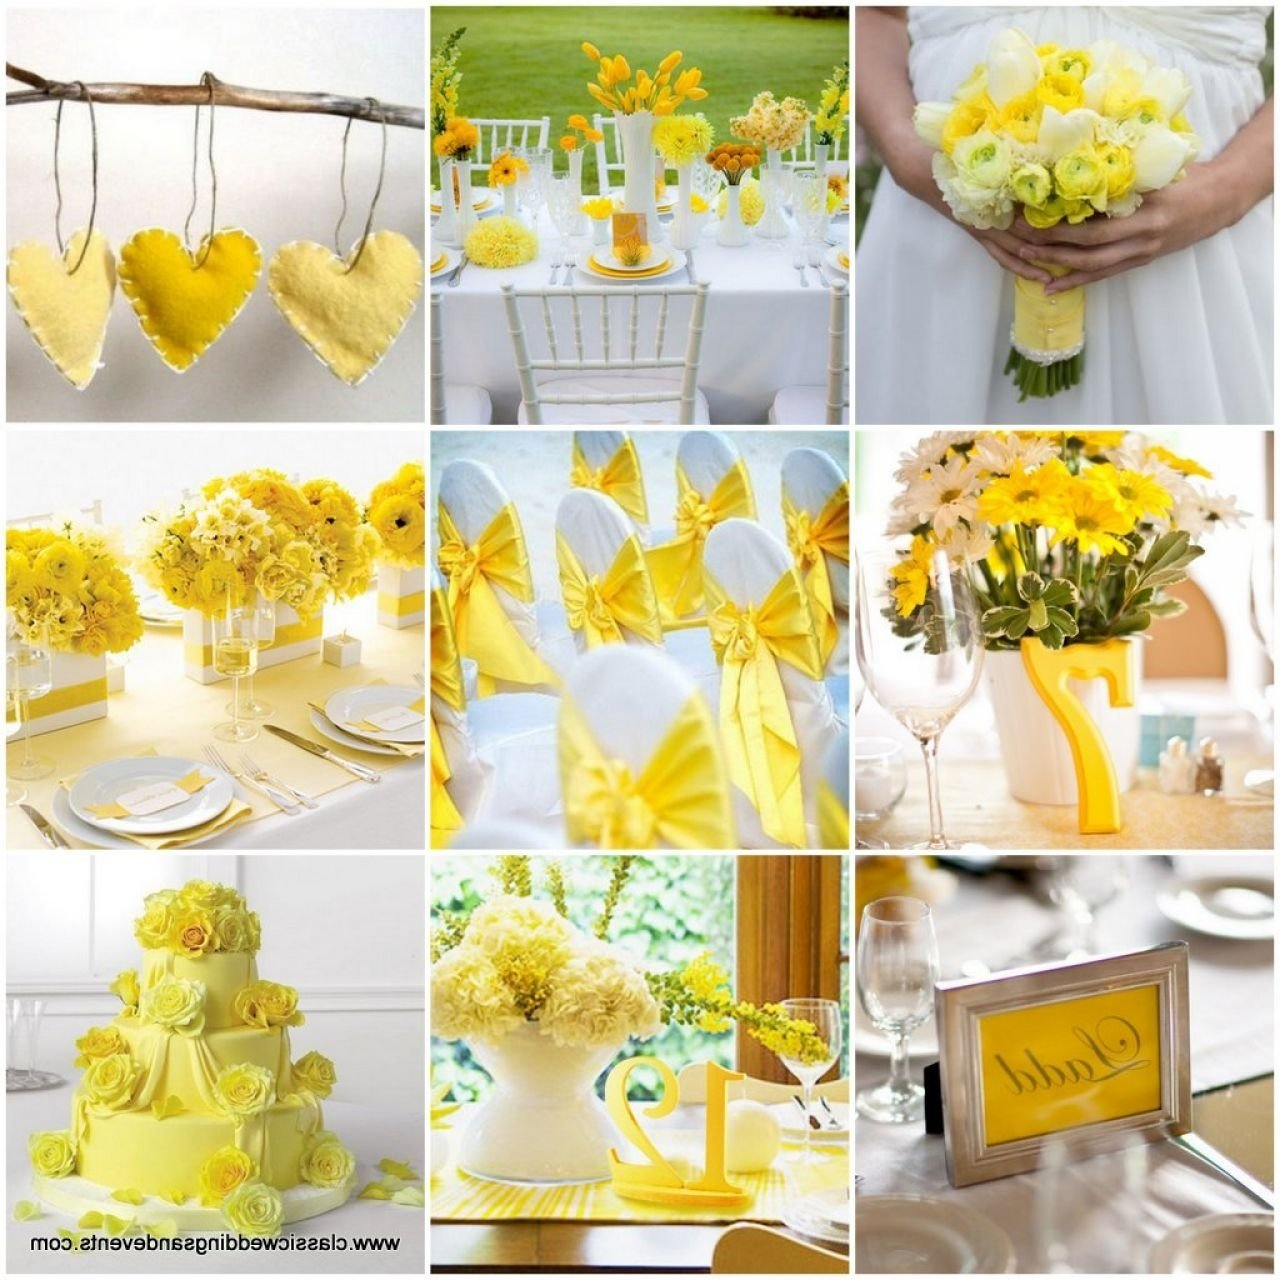 10 Attractive Wedding Ideas For Summer On A Budget lovable cheap wedding ideas cheap wedding ideas for summer 99 2 2020